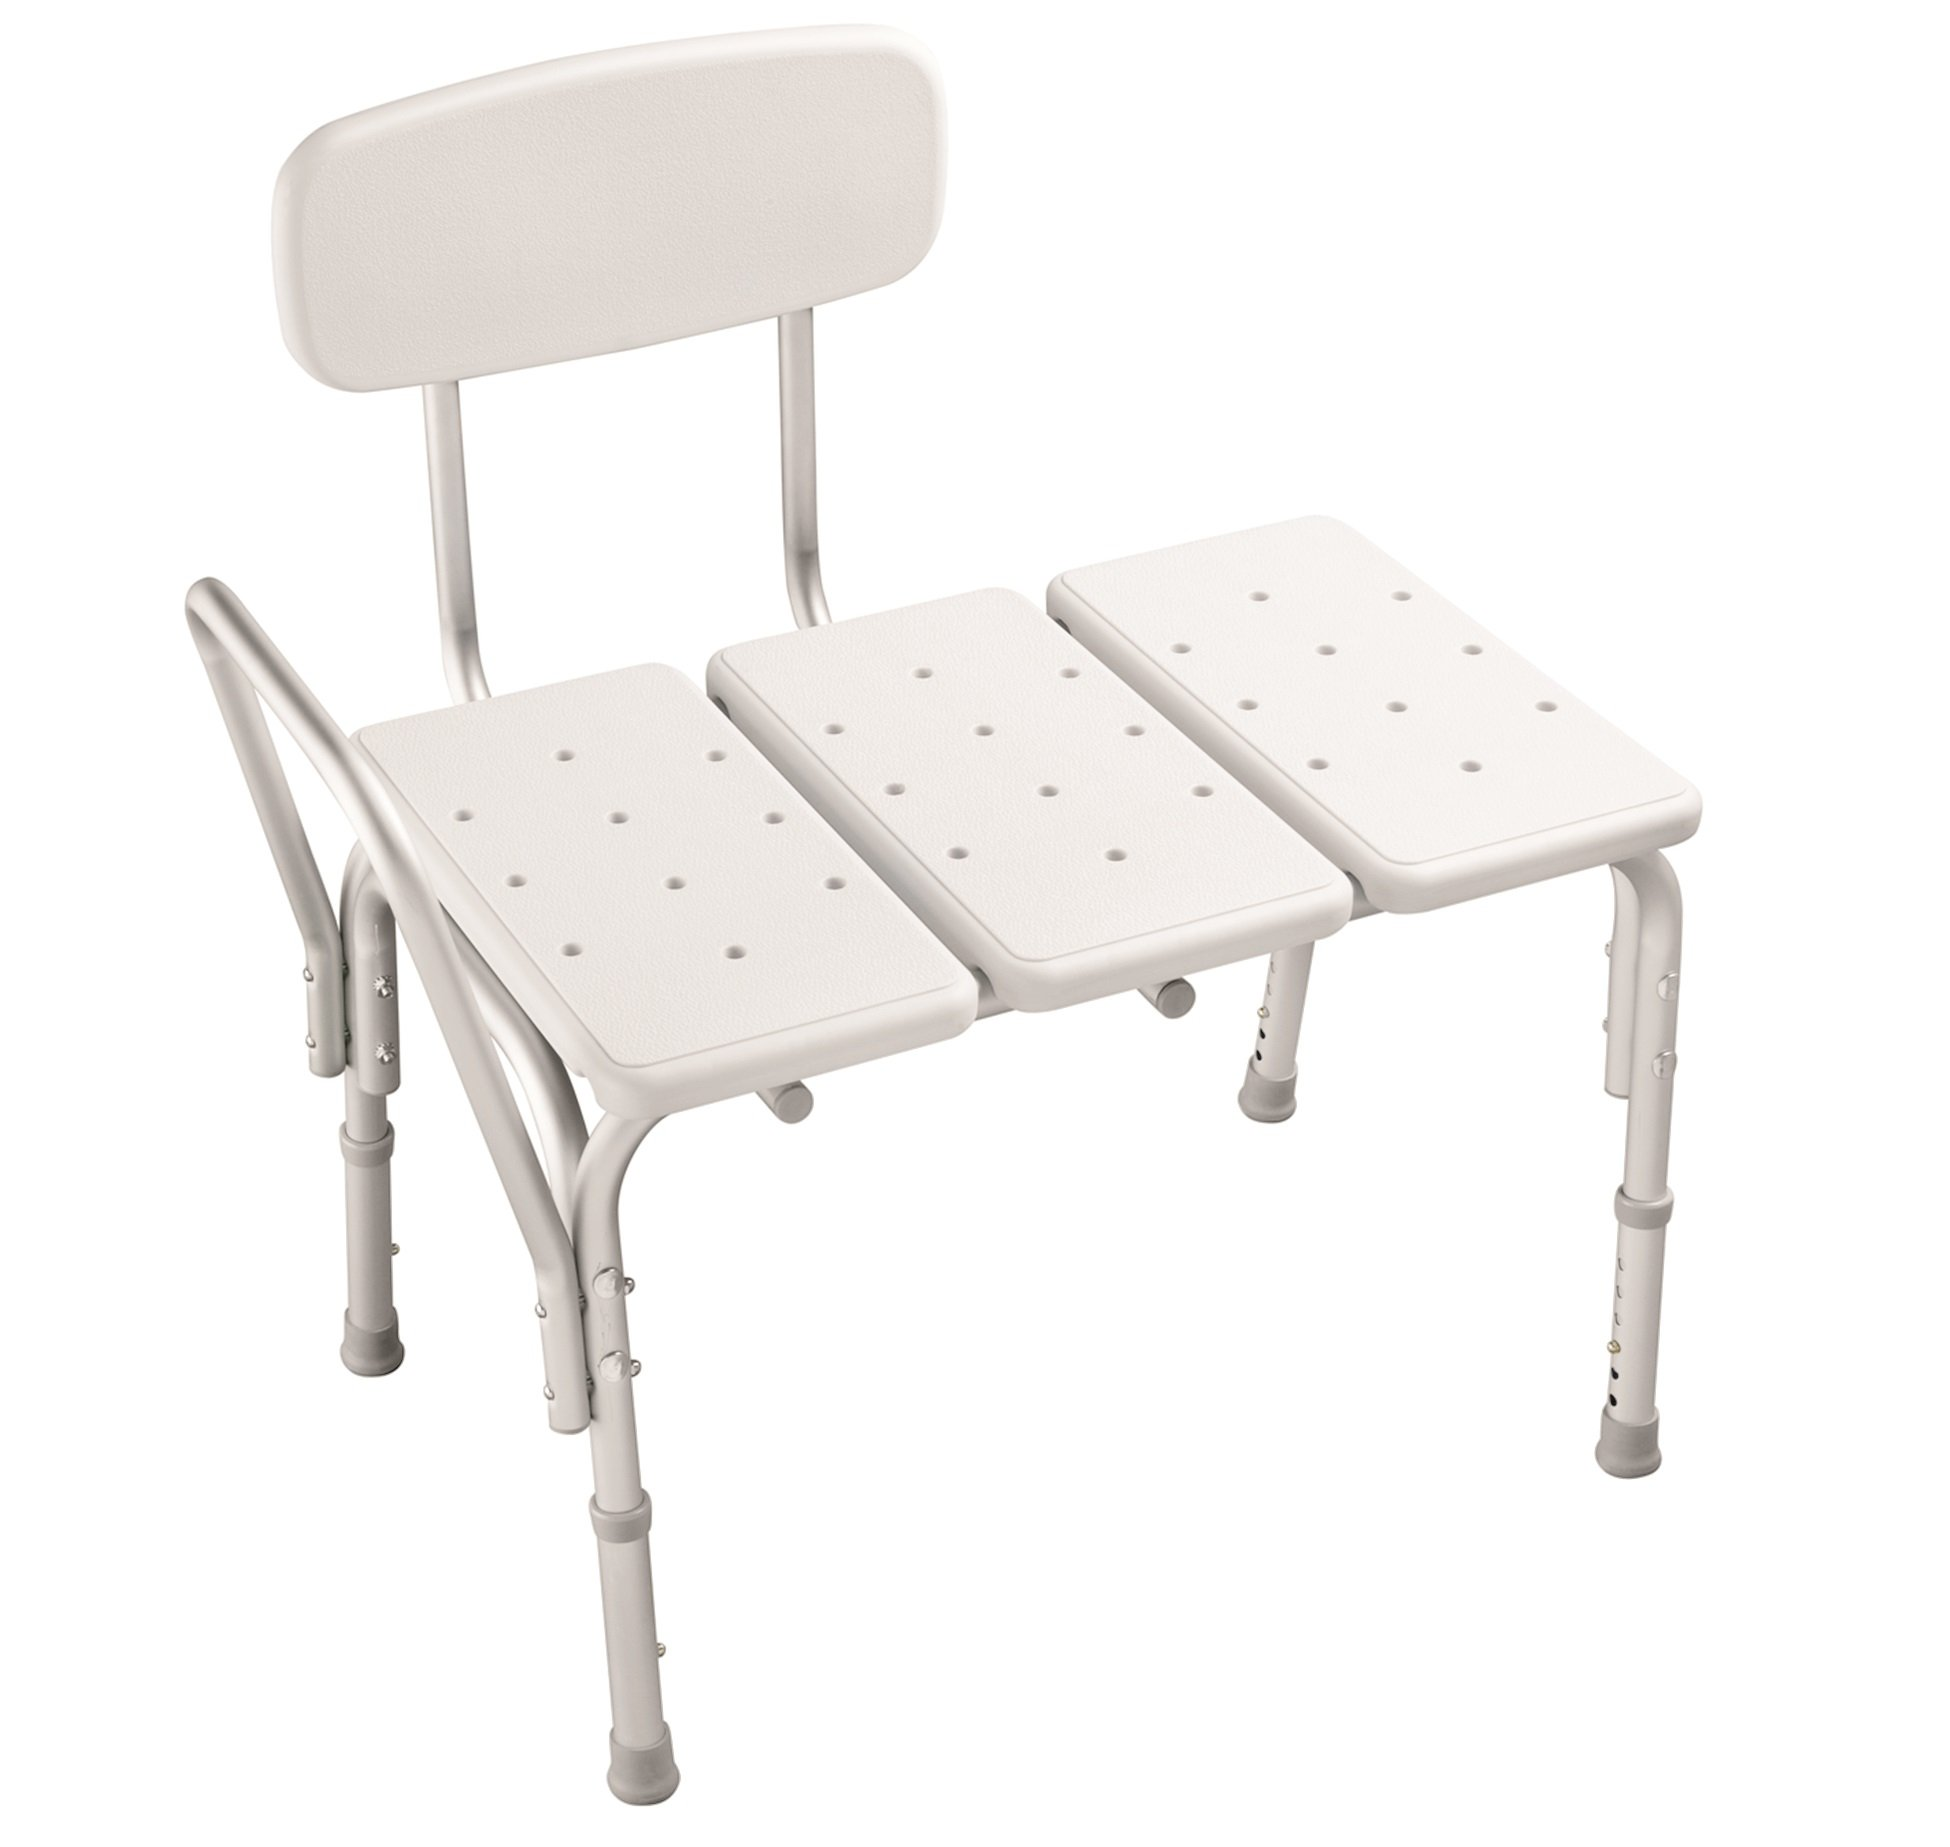 Delta DF565 Bathroom Safety Adjustable Bath Safety Transfer Bench, White by DELTA FAUCET